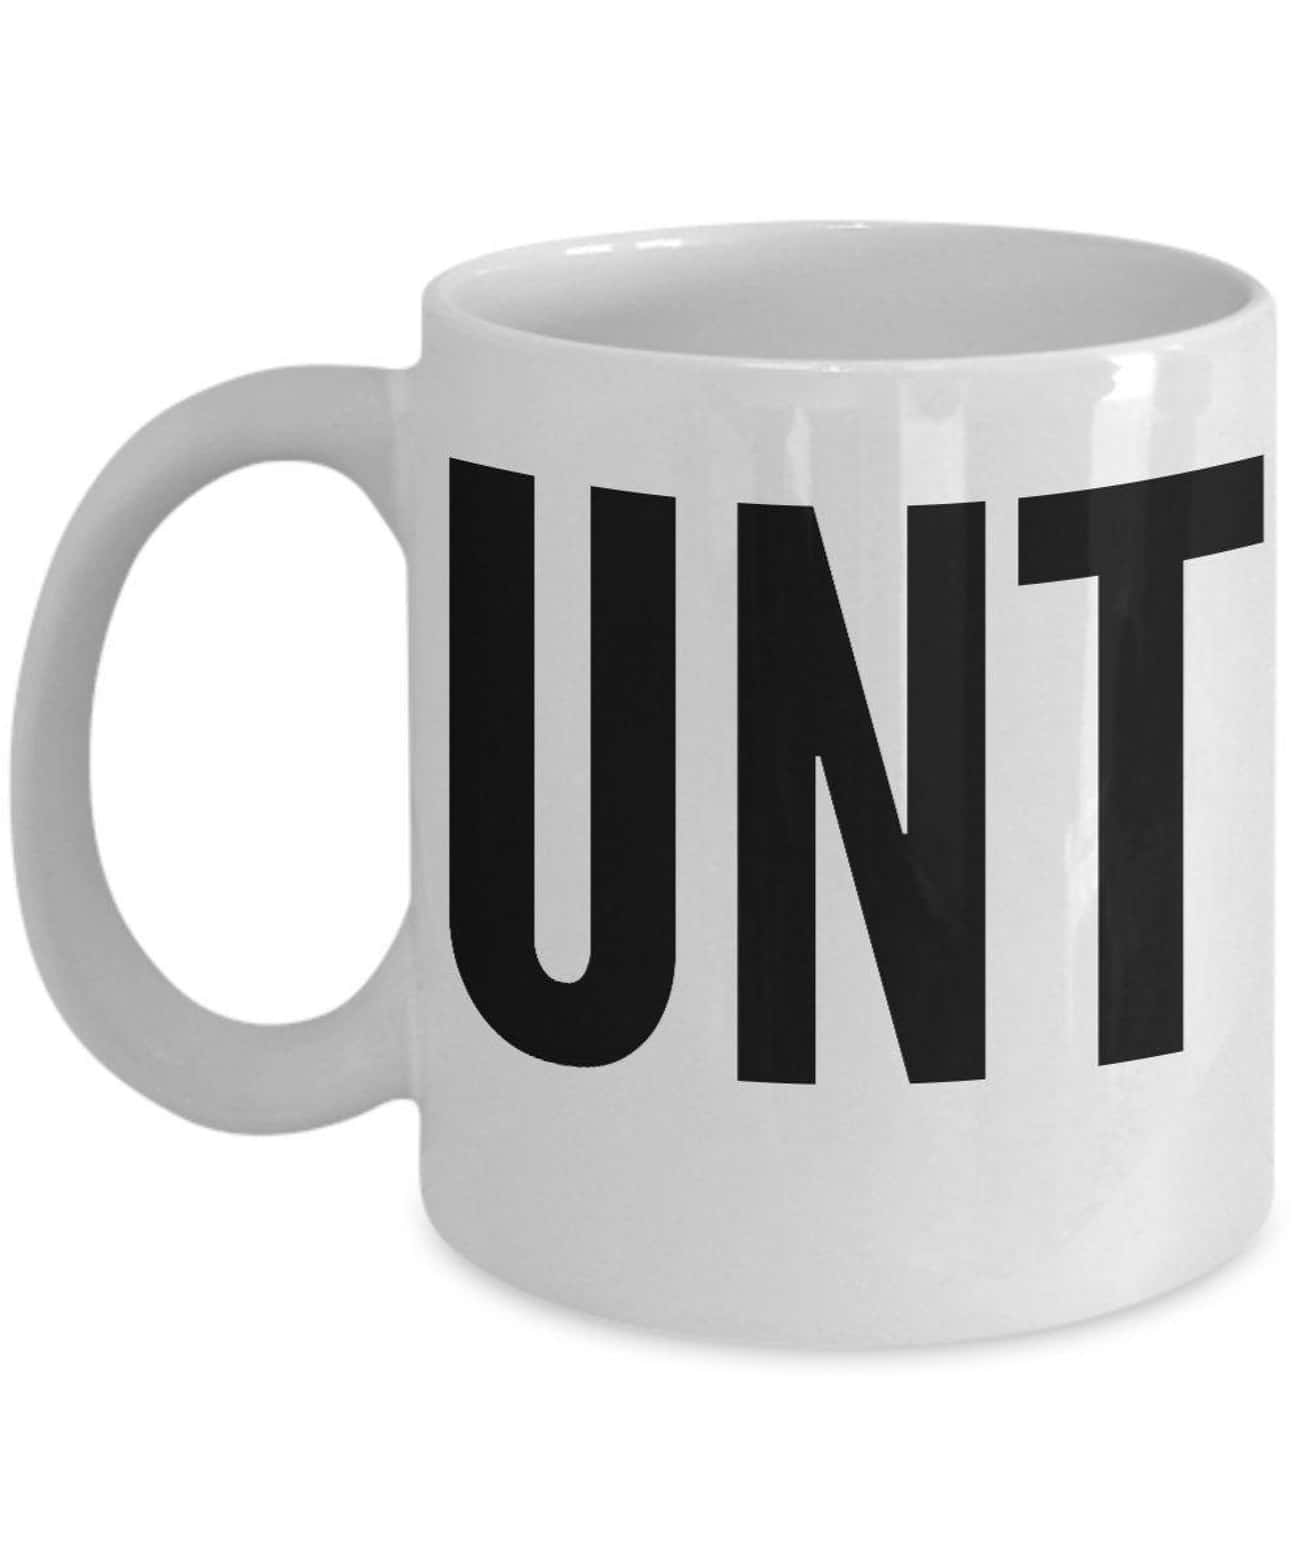 Get A Handle On It is listed (or ranked) 4 on the list Dirty Mugs To Add A Little Humor To Your Day